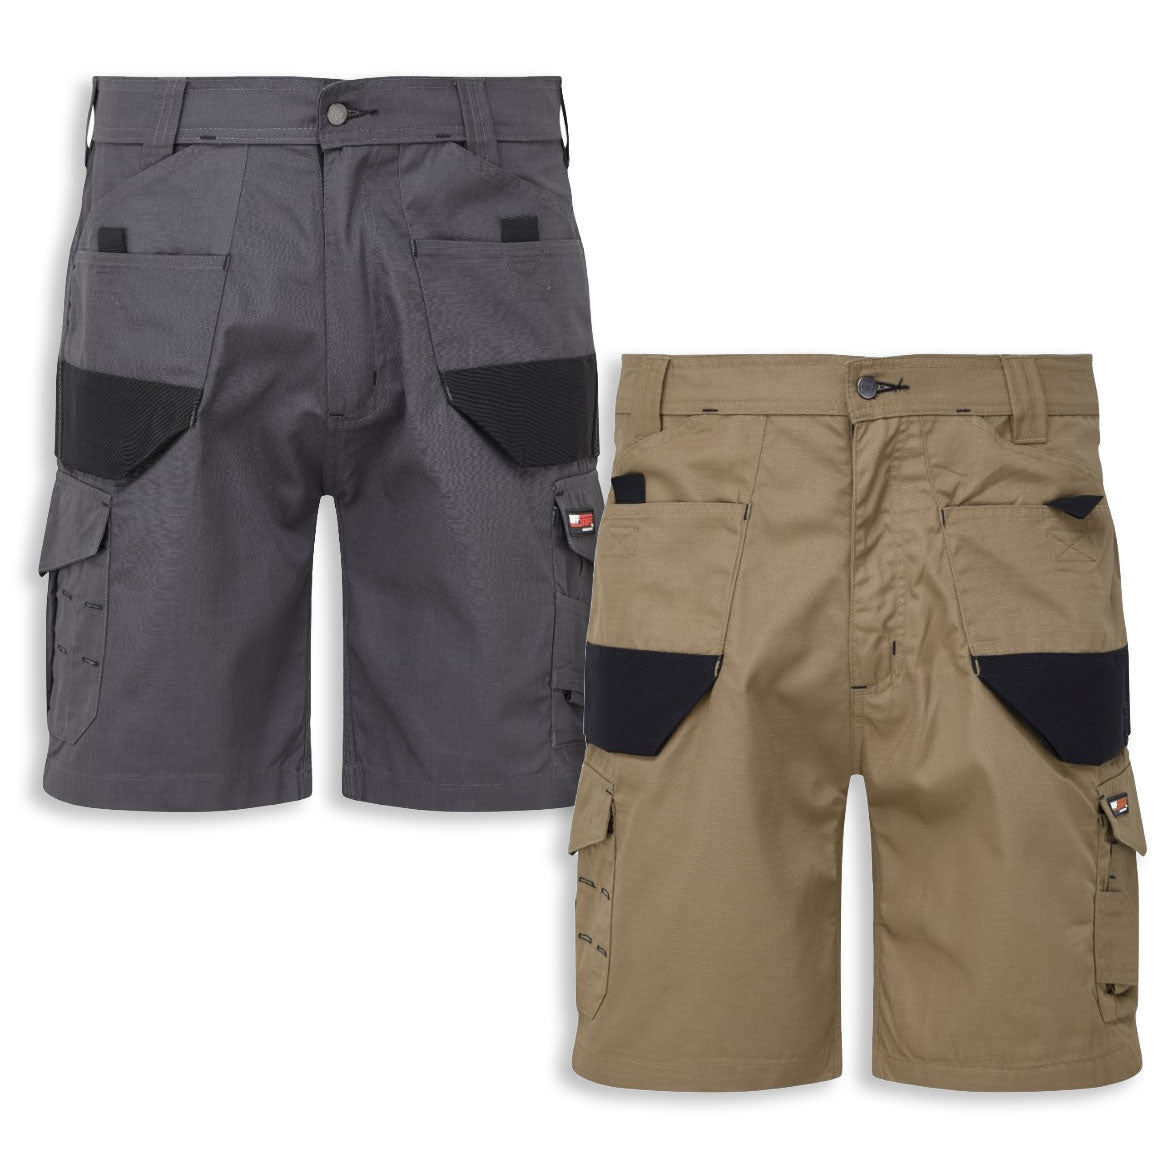 Castle Tuffstuff Elite Work Shorts | Sand/Black, Grey/Black